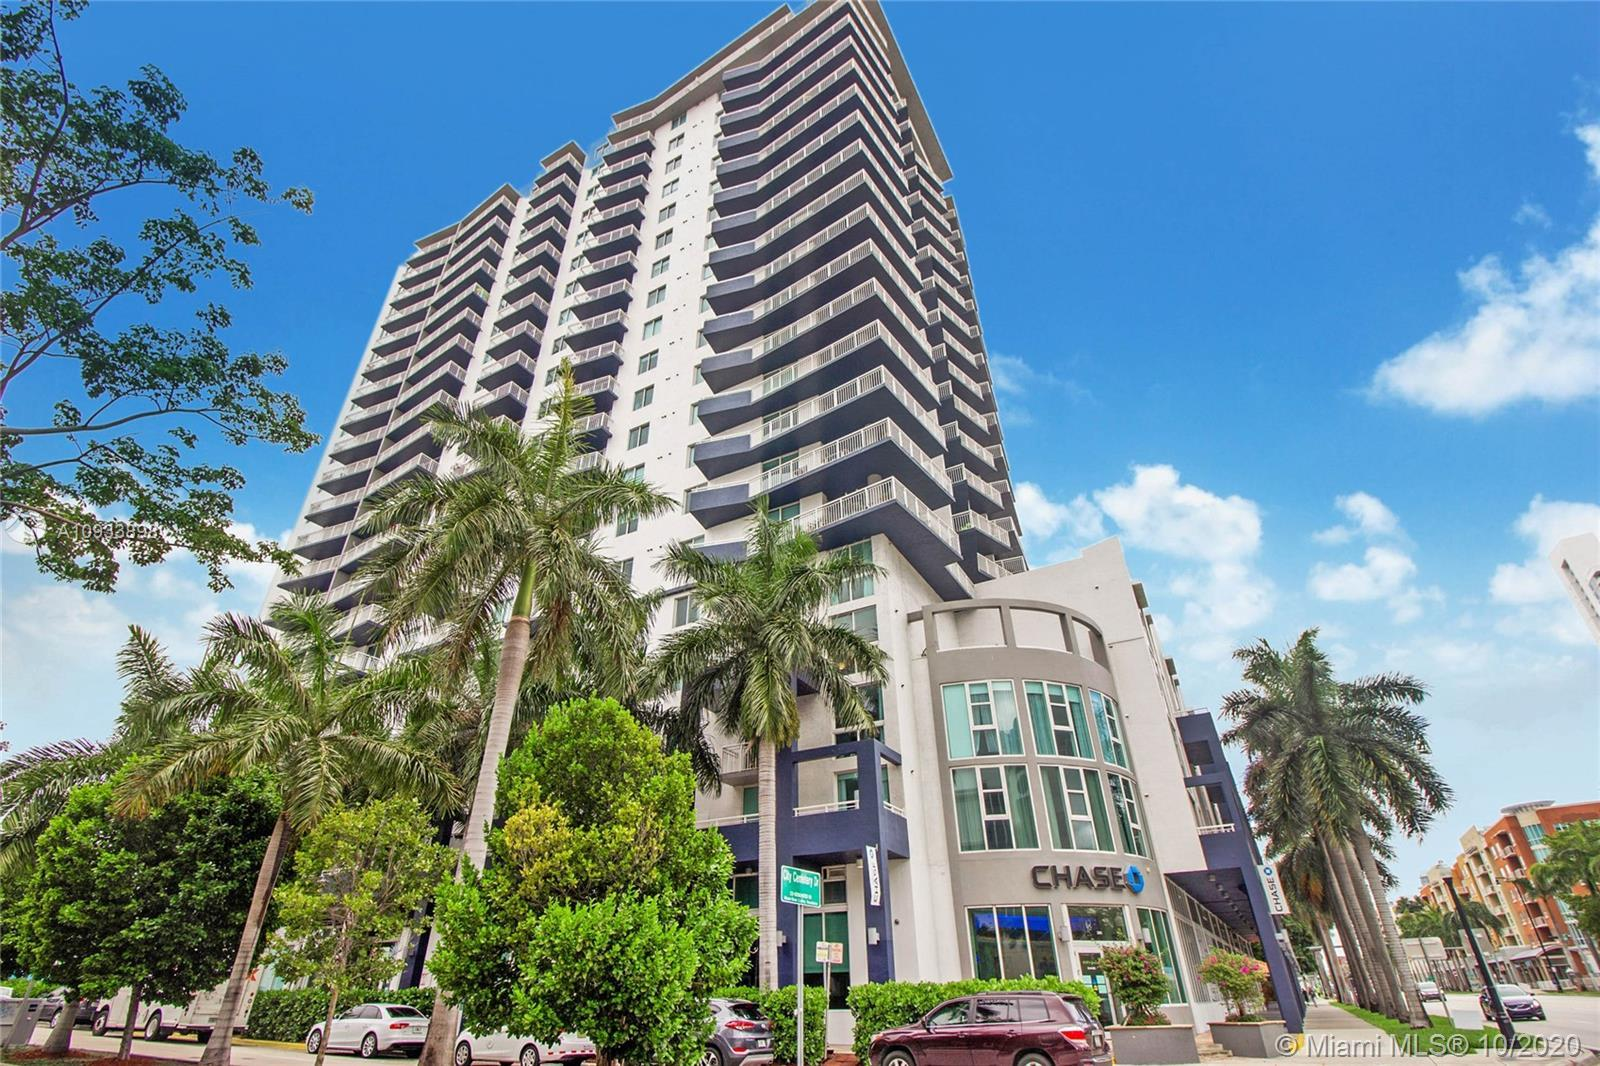 Beautiful 3 Bedroom/2 Bathroom corner unit with oversized wraparound balcony! Unit features an open